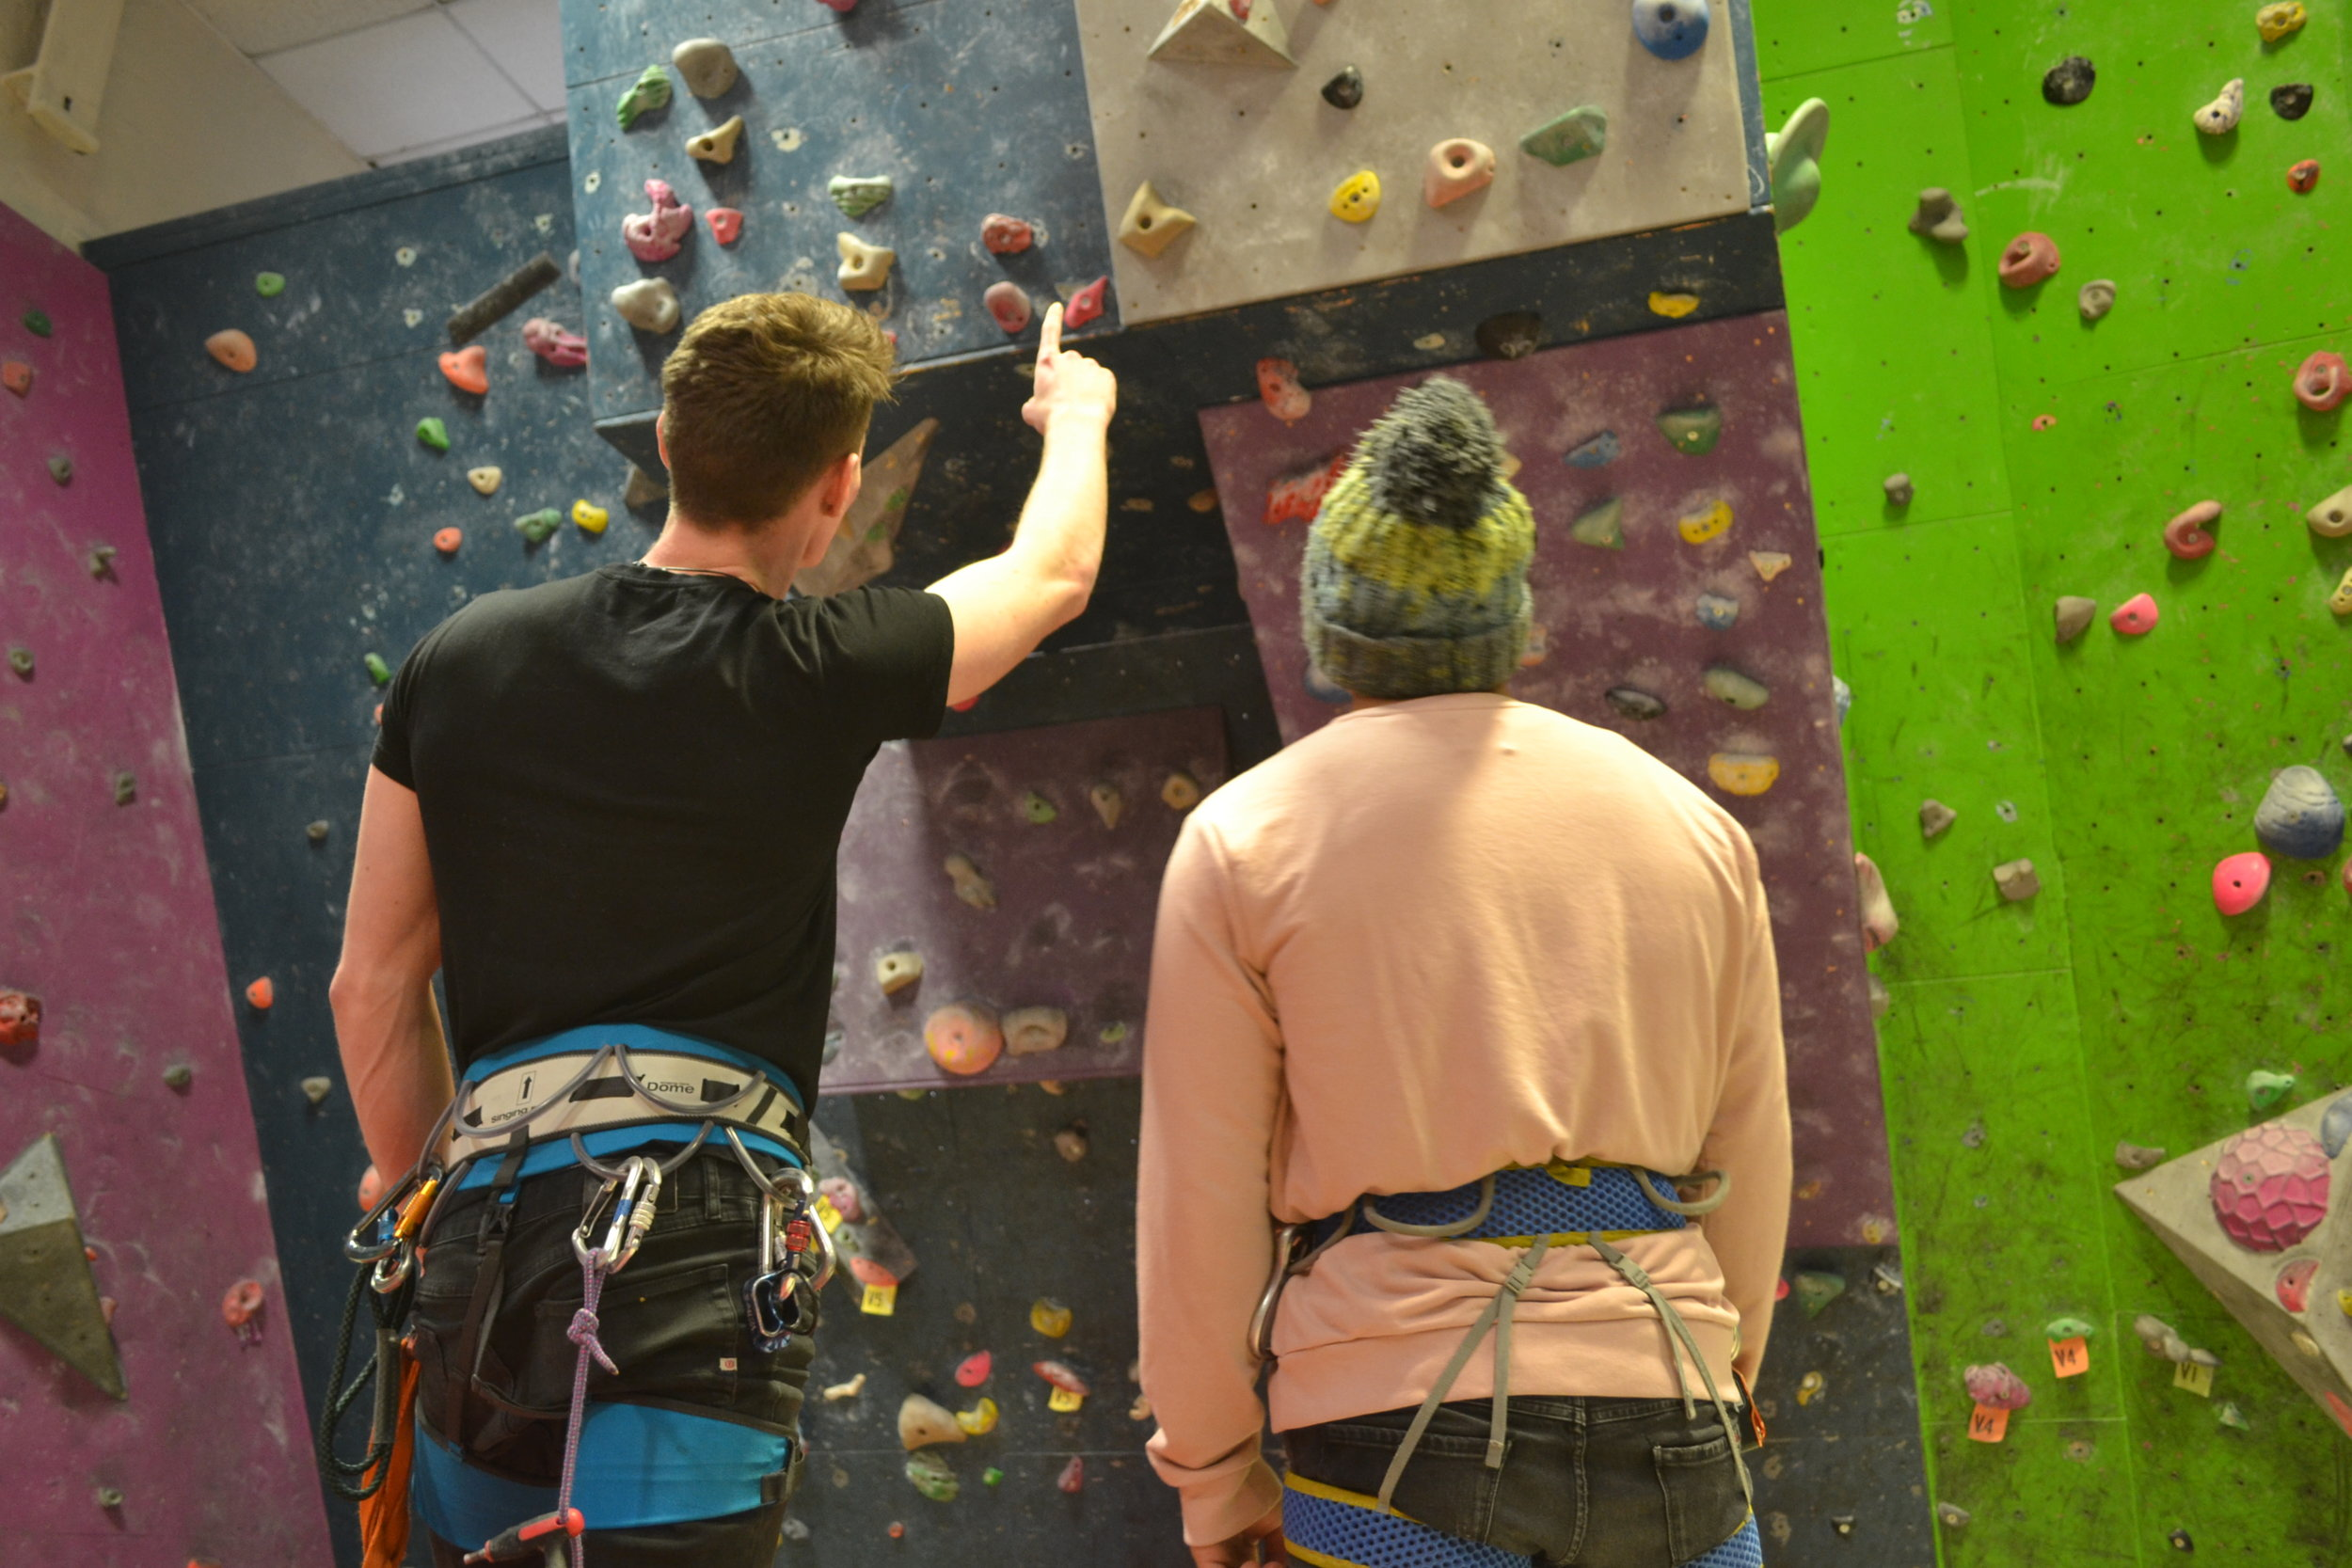 Adults Learn To Climb - MONDAYS AND FRIDAYSIntro to climbing - learn skills - improve skills18:30 - 19:30Booking required. £12.50 per head.Please download and fill out the Adult Registration Form.Check out our workshops